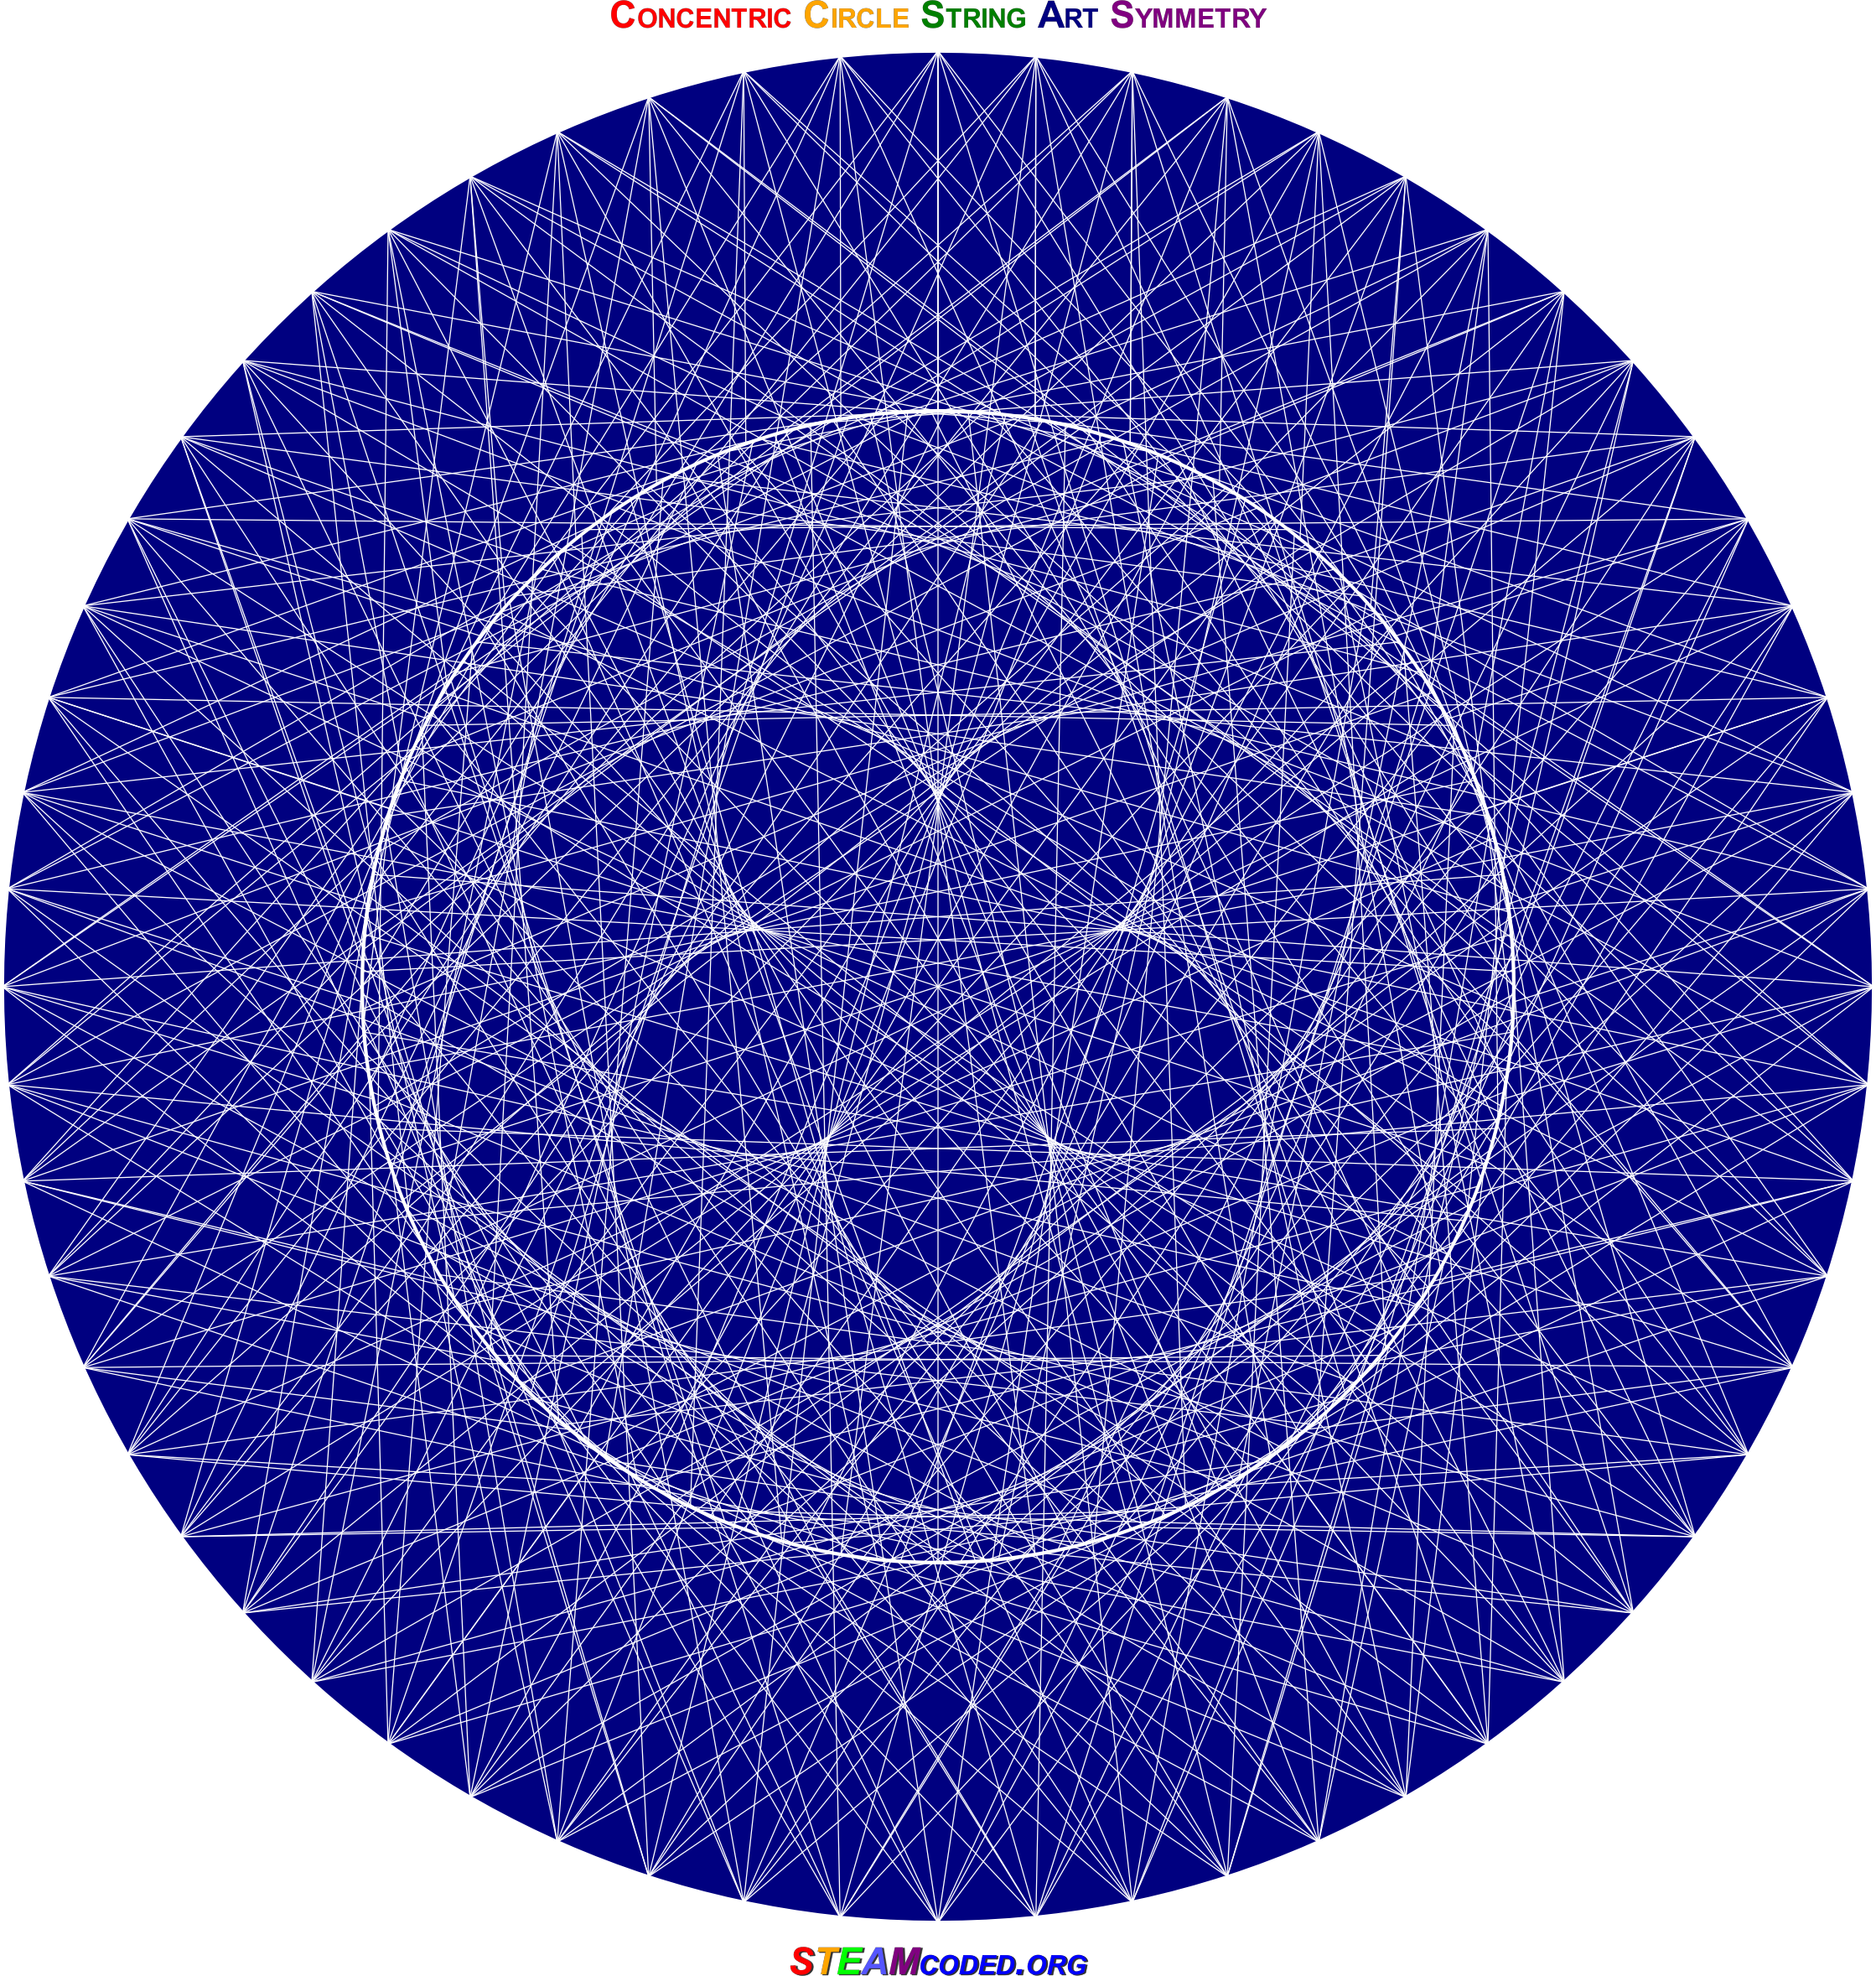 Concentric Circle Symmetry by JayNick